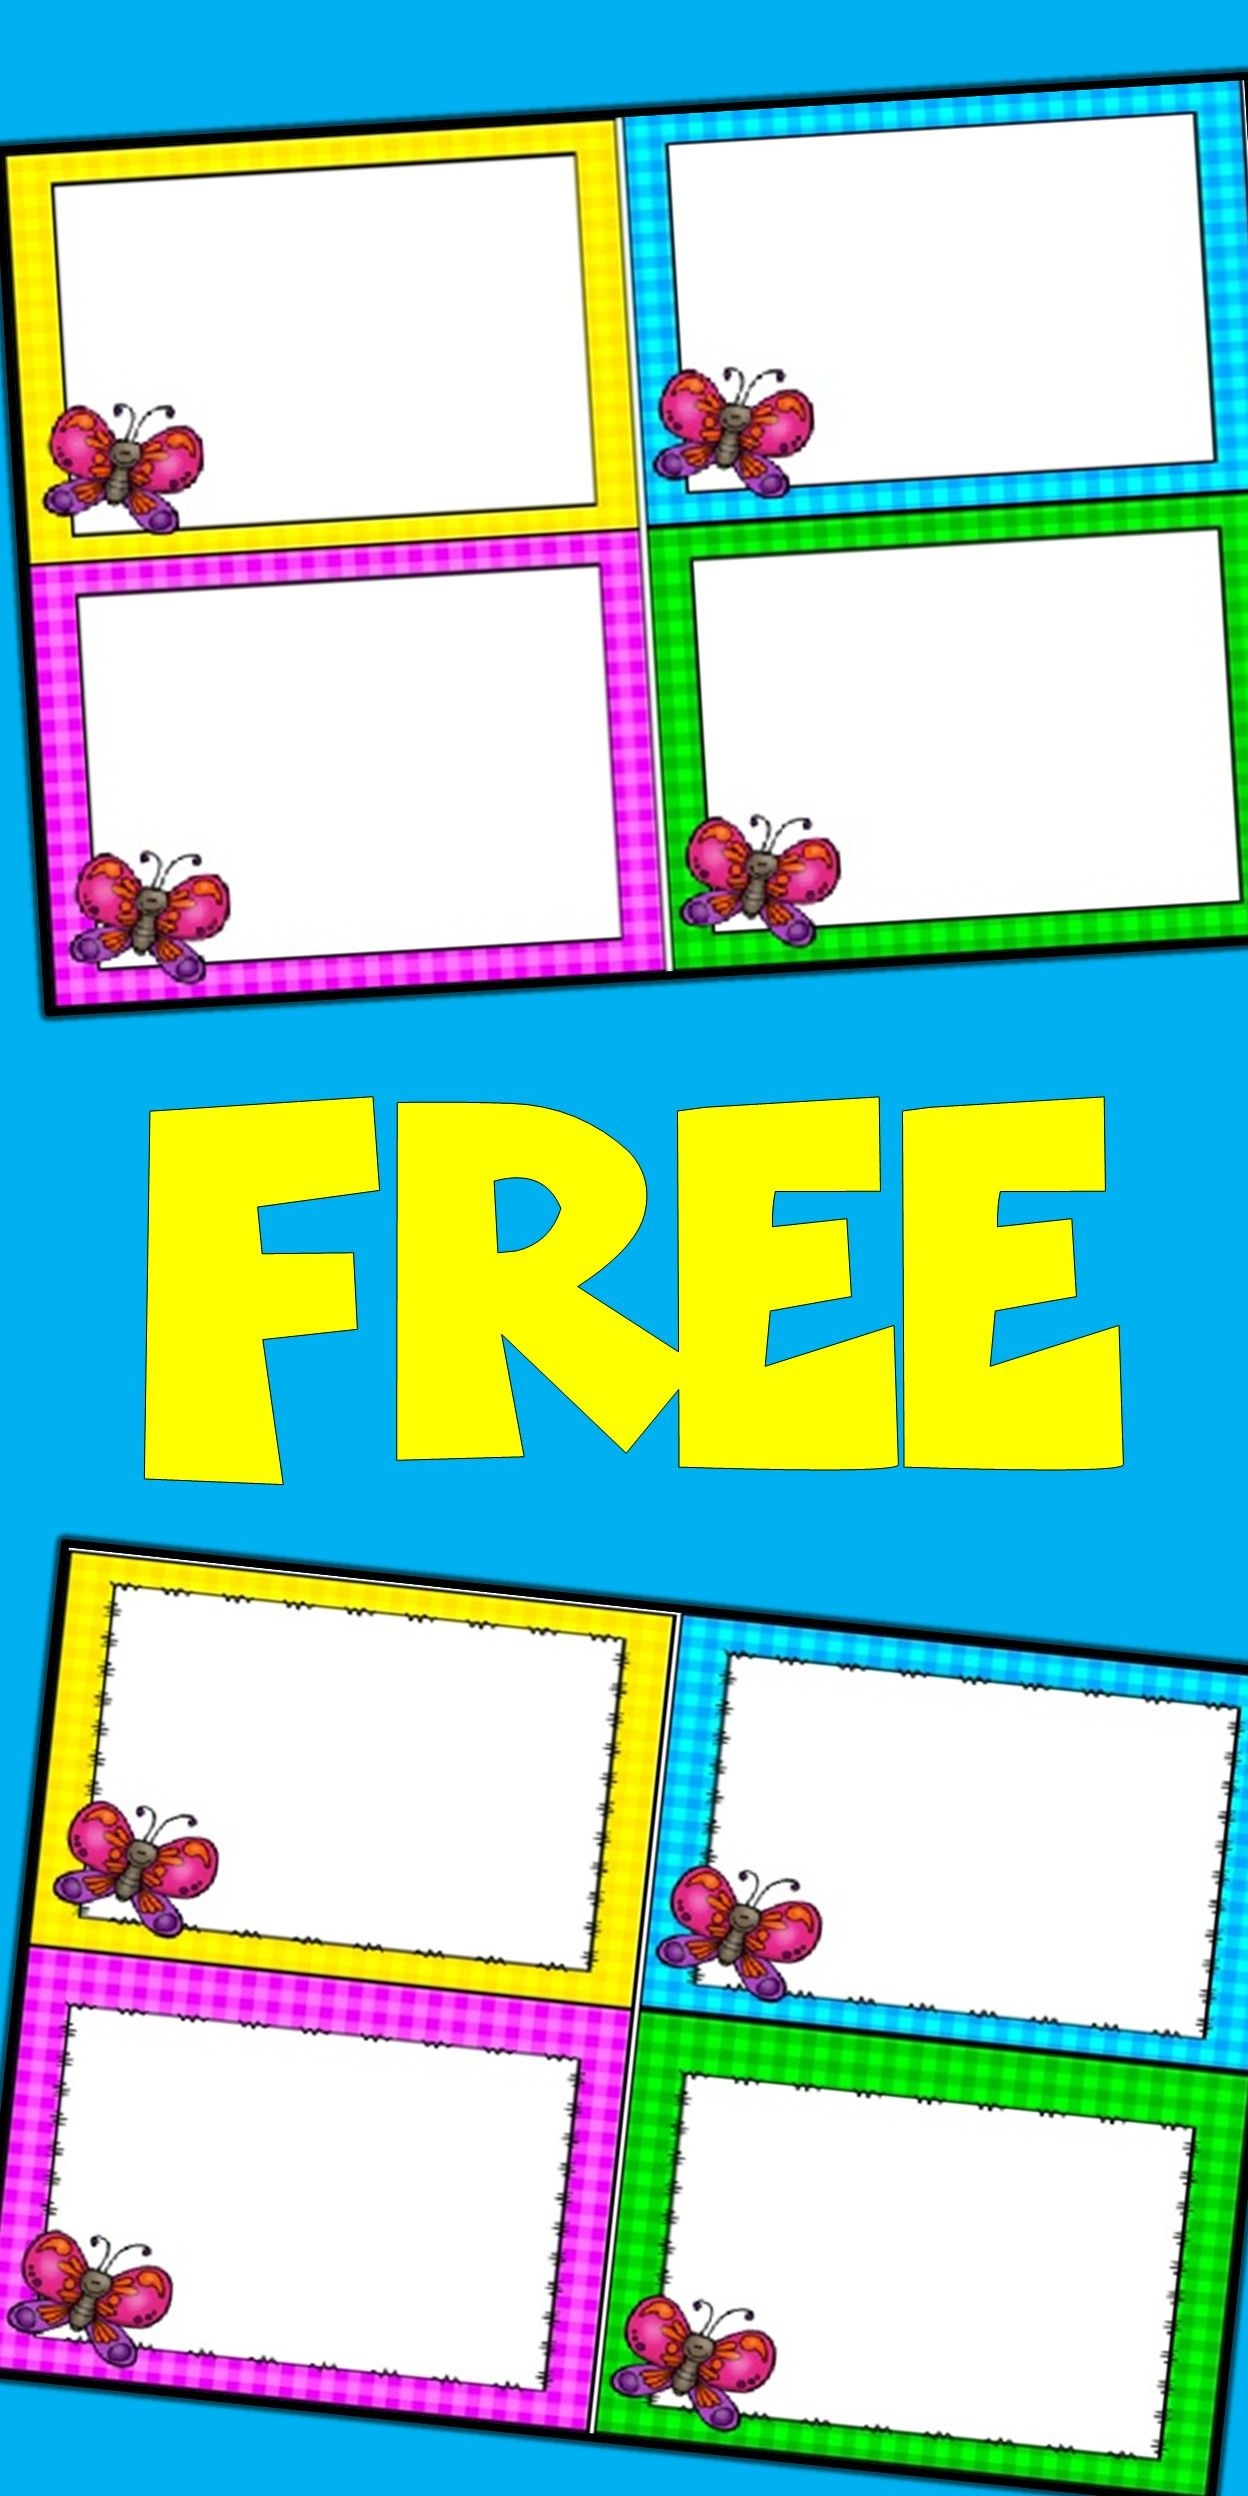 Free Editable Spring Card Templates | Butterflies | Butterfly - Free Printable Blank Task Cards